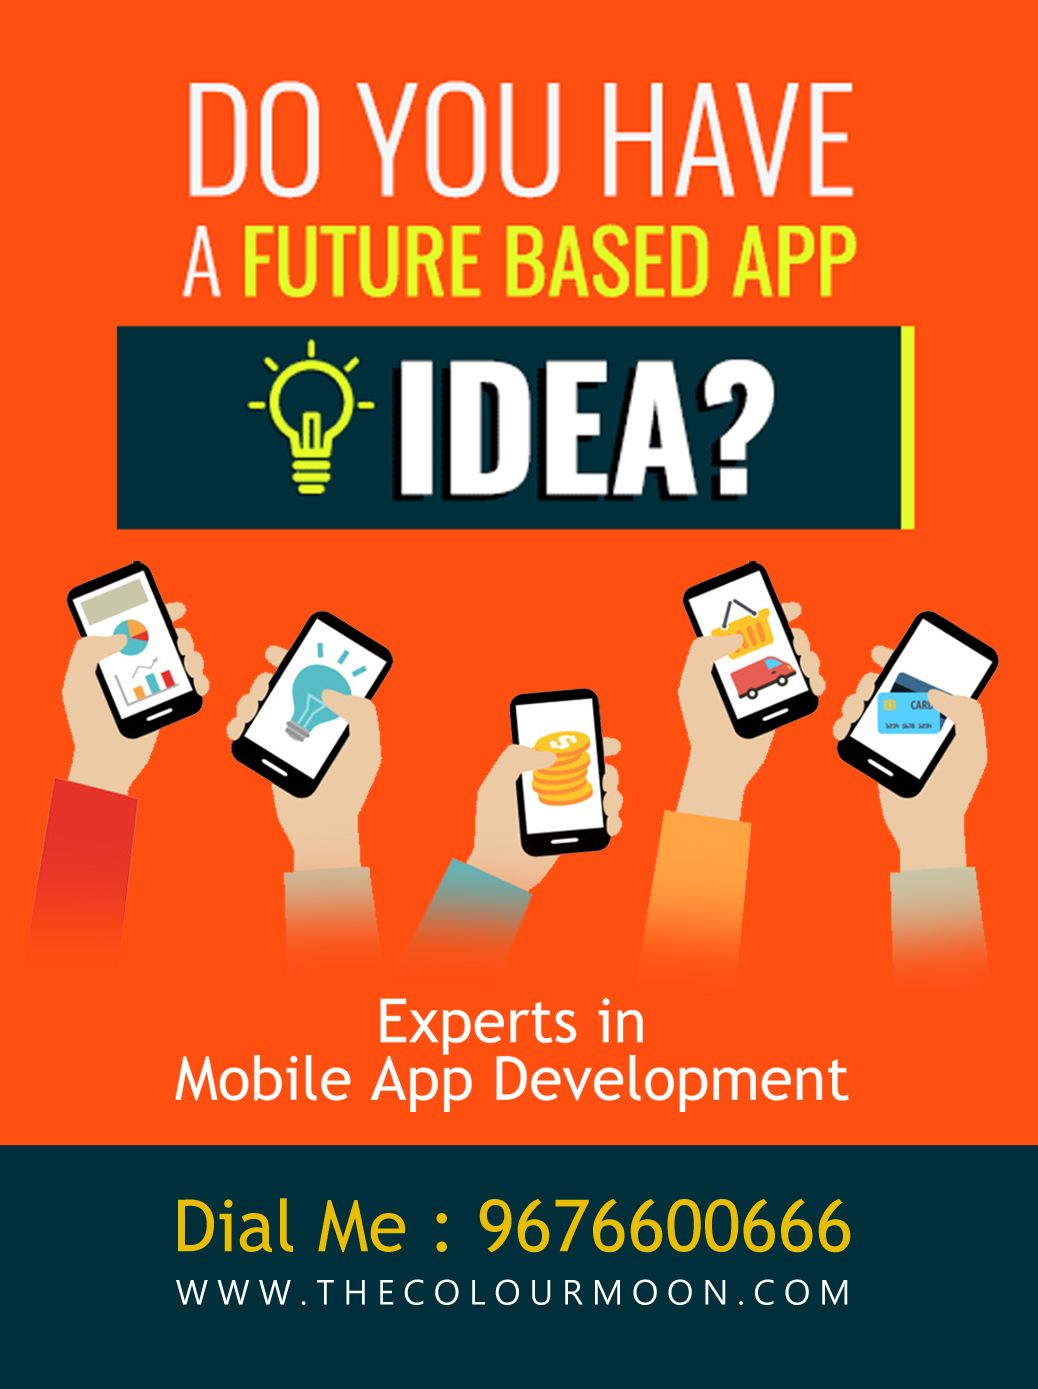 Looking to hire mobile app developers? The Colour Moon